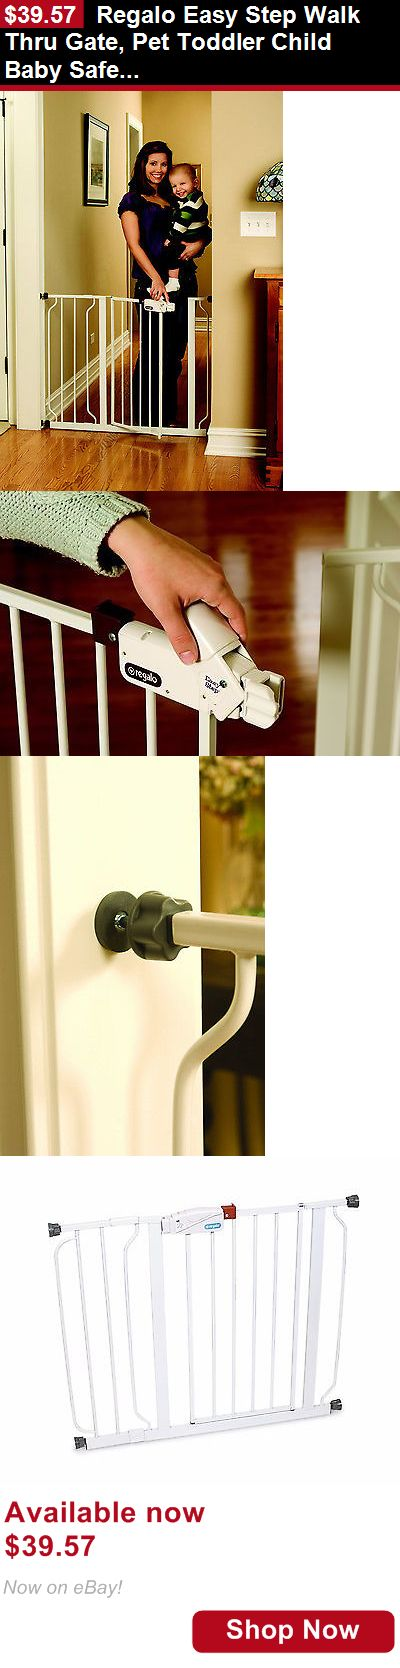 Baby Safety Gates: Regalo Easy Step Walk Thru Gate, Pet Toddler Child Baby Safety White BUY IT NOW ONLY: $39.57